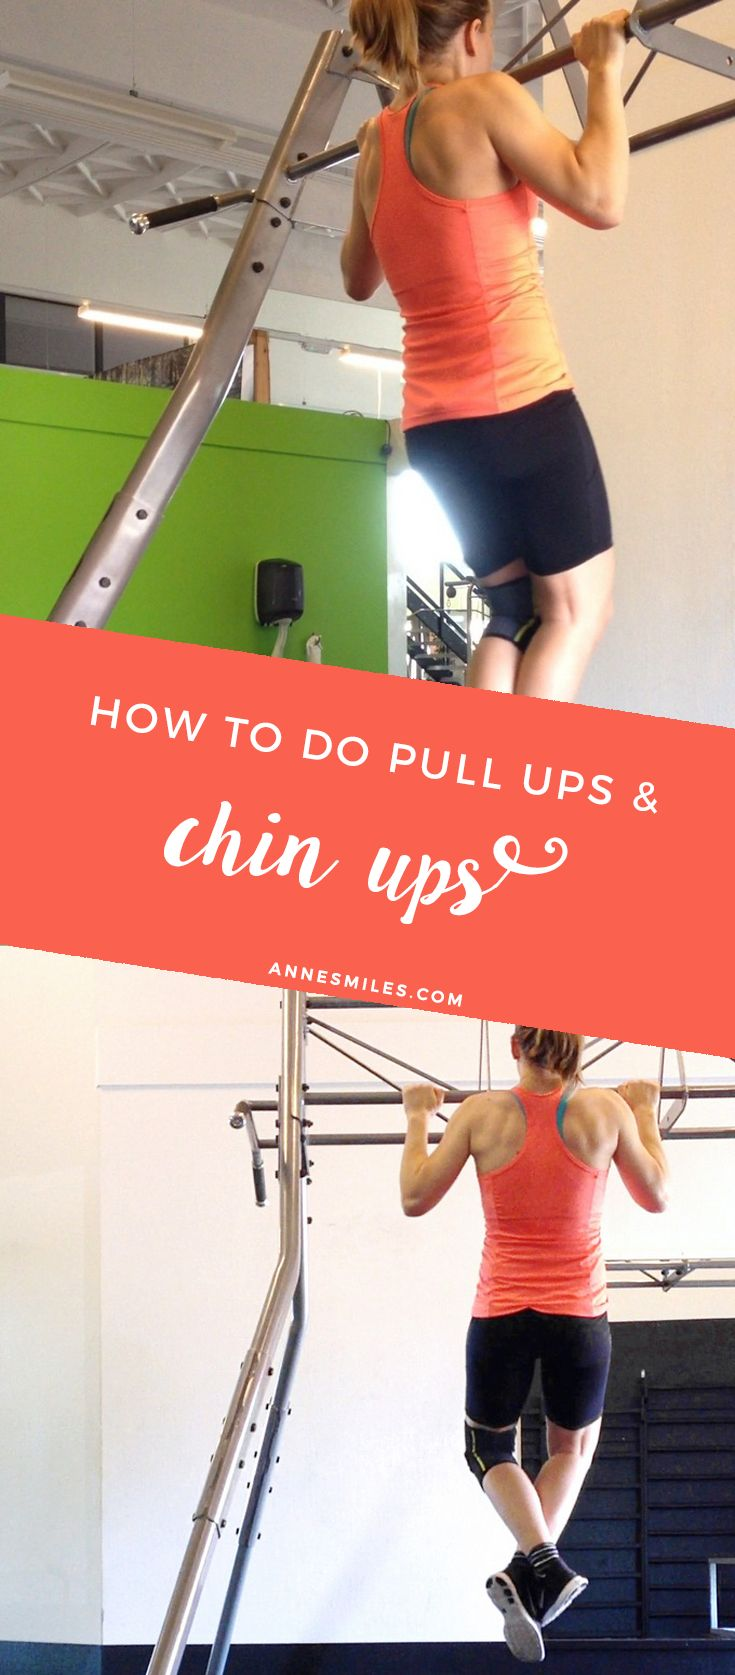 Can't Do Pull Ups? Just Do THIS! - YouTube